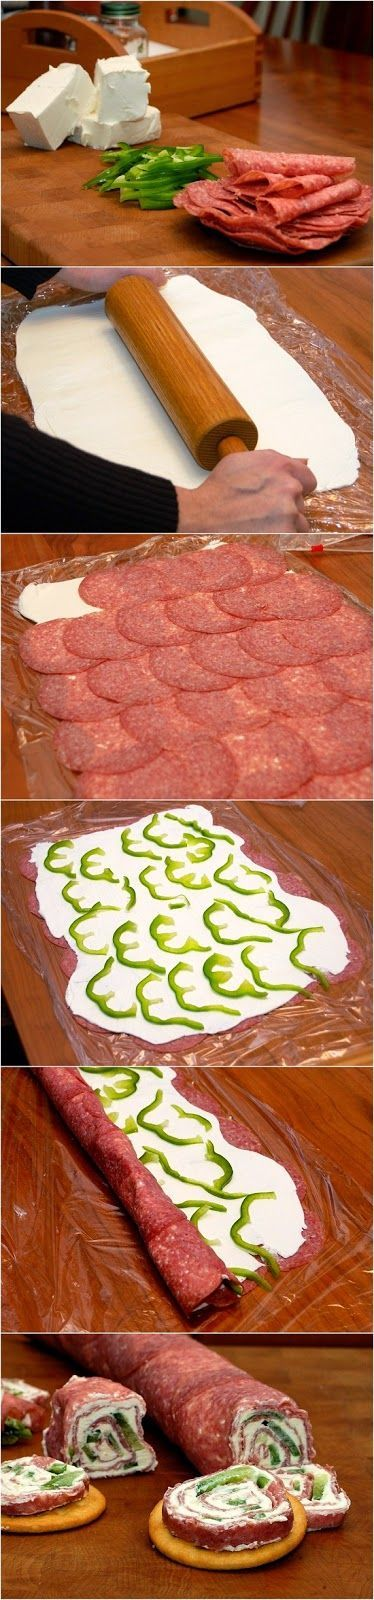 Salami and Cream Cheese Roll-ups or use pepperoni and spinach